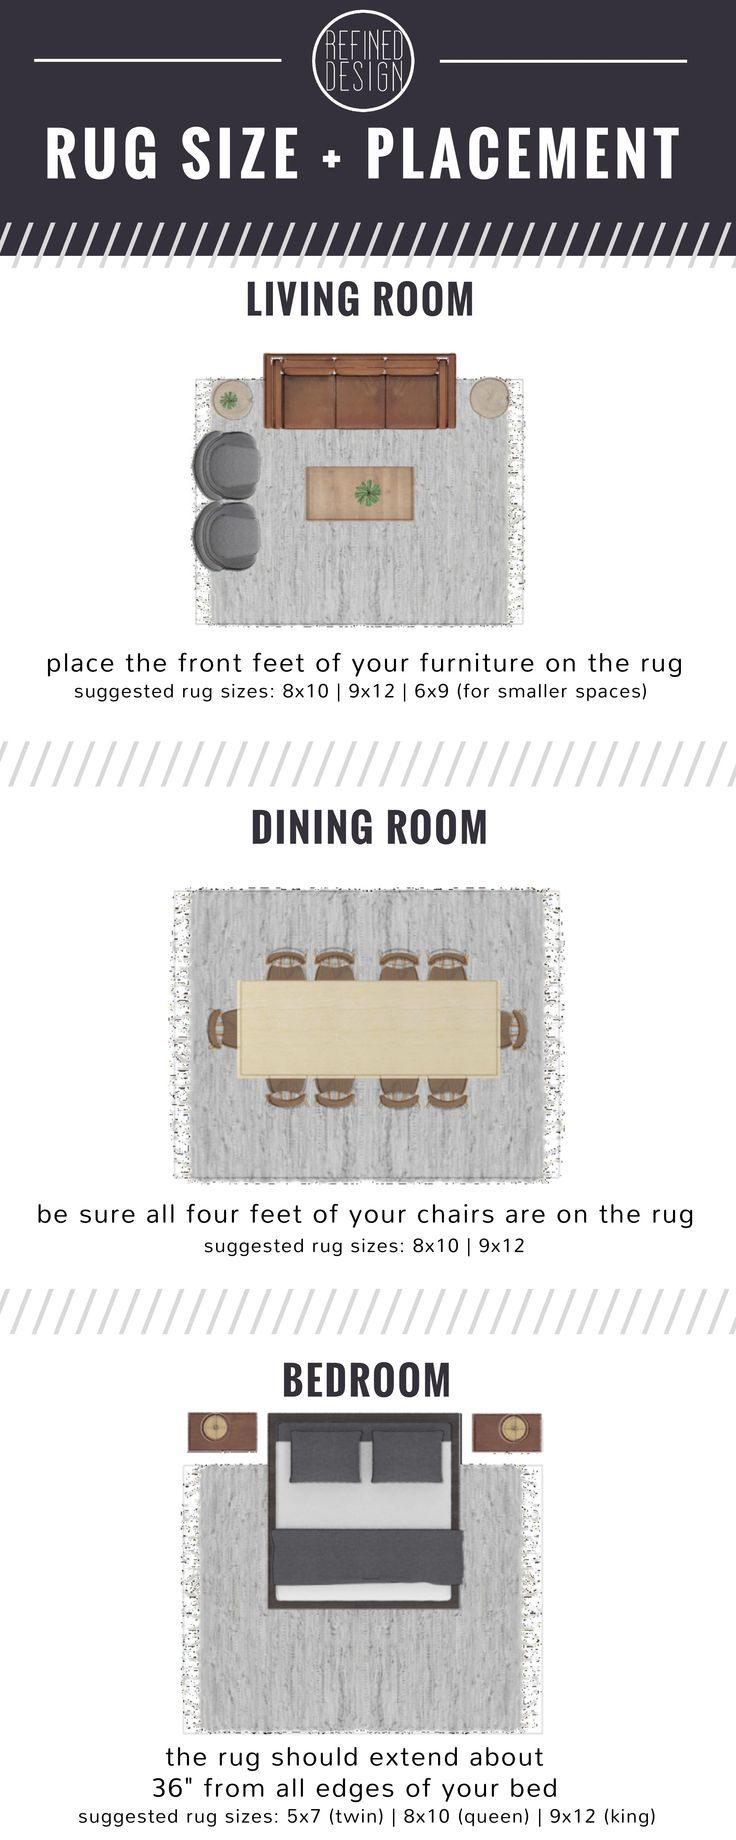 RUG SIZE + PLACEMENT GUIDE images